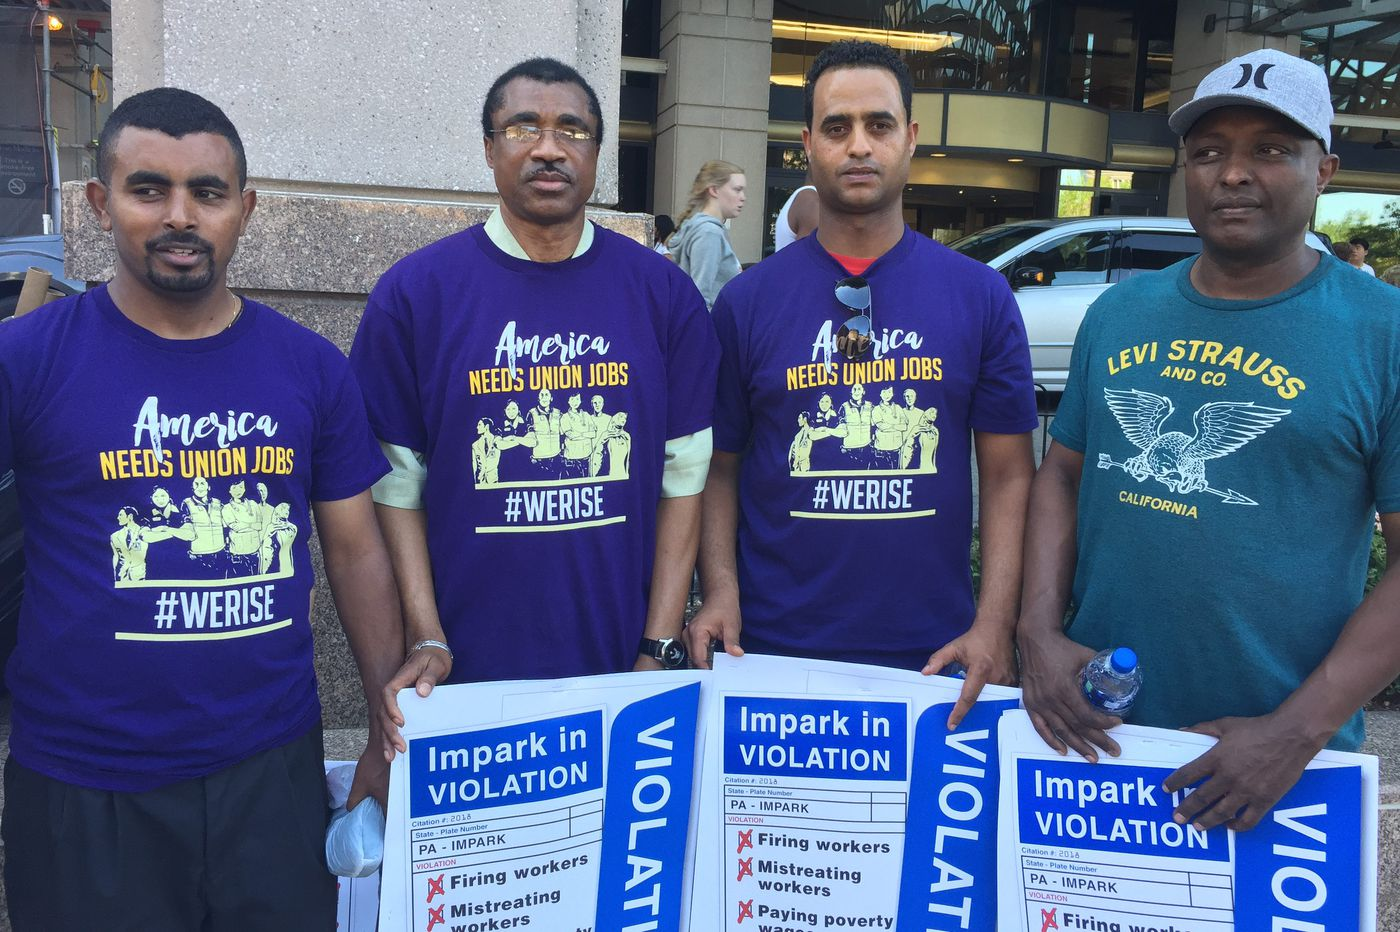 The valets who got fired after trying to unionize have gotten their jobs back